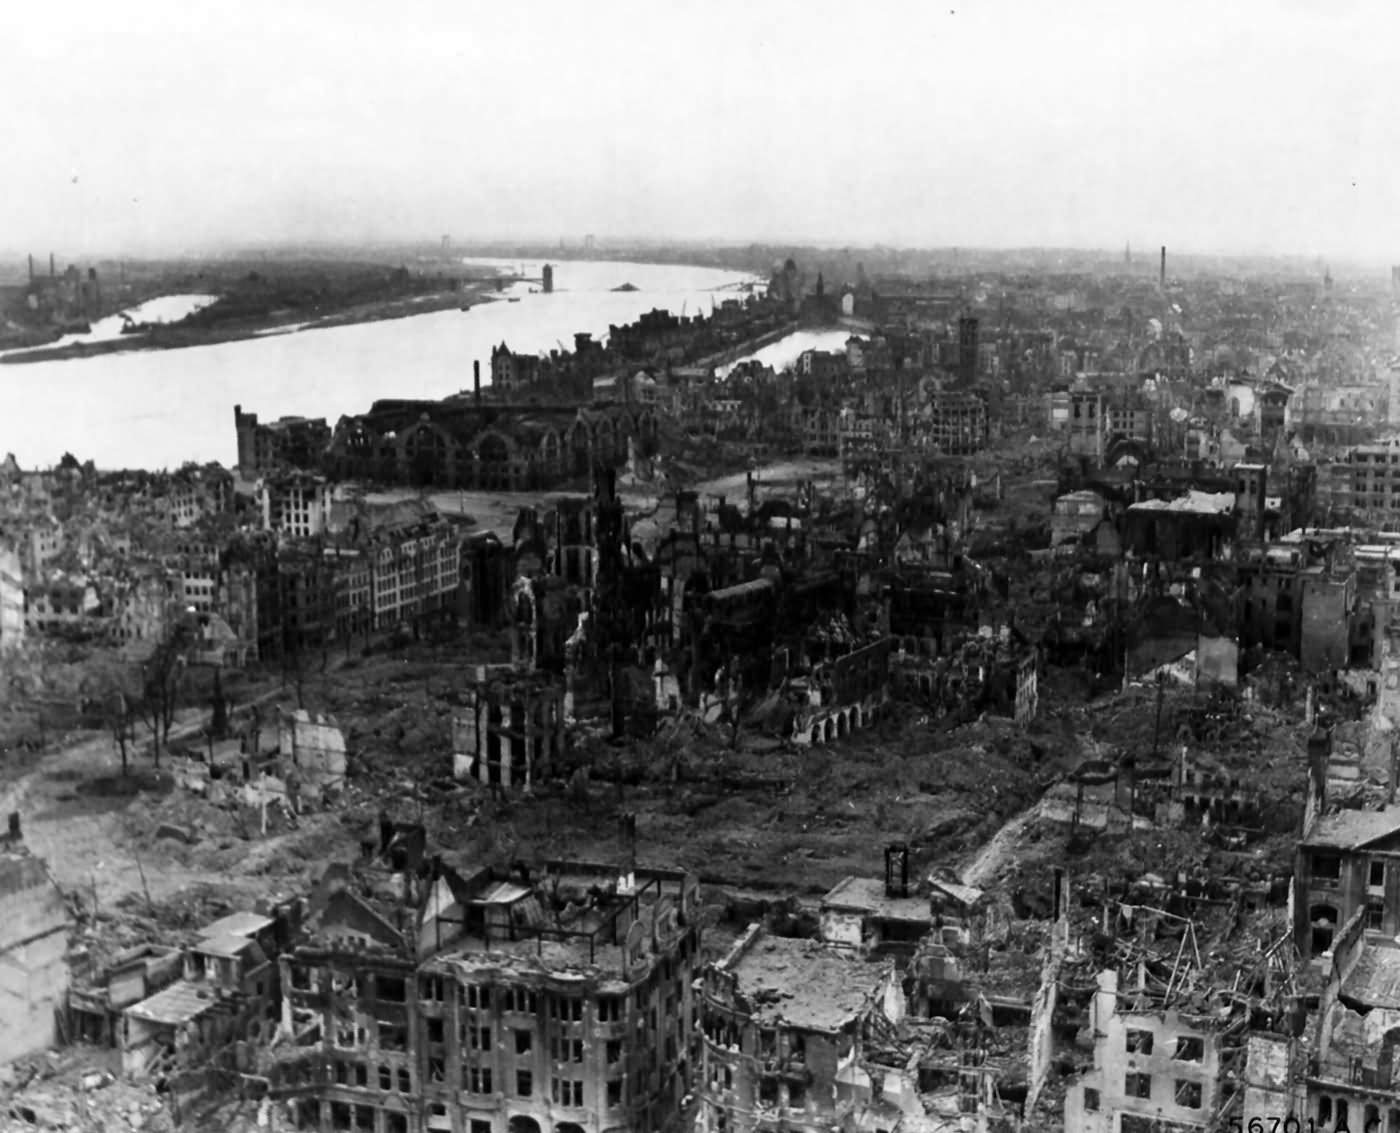 A panoramic view of the city of Köln (Cologne) 1945